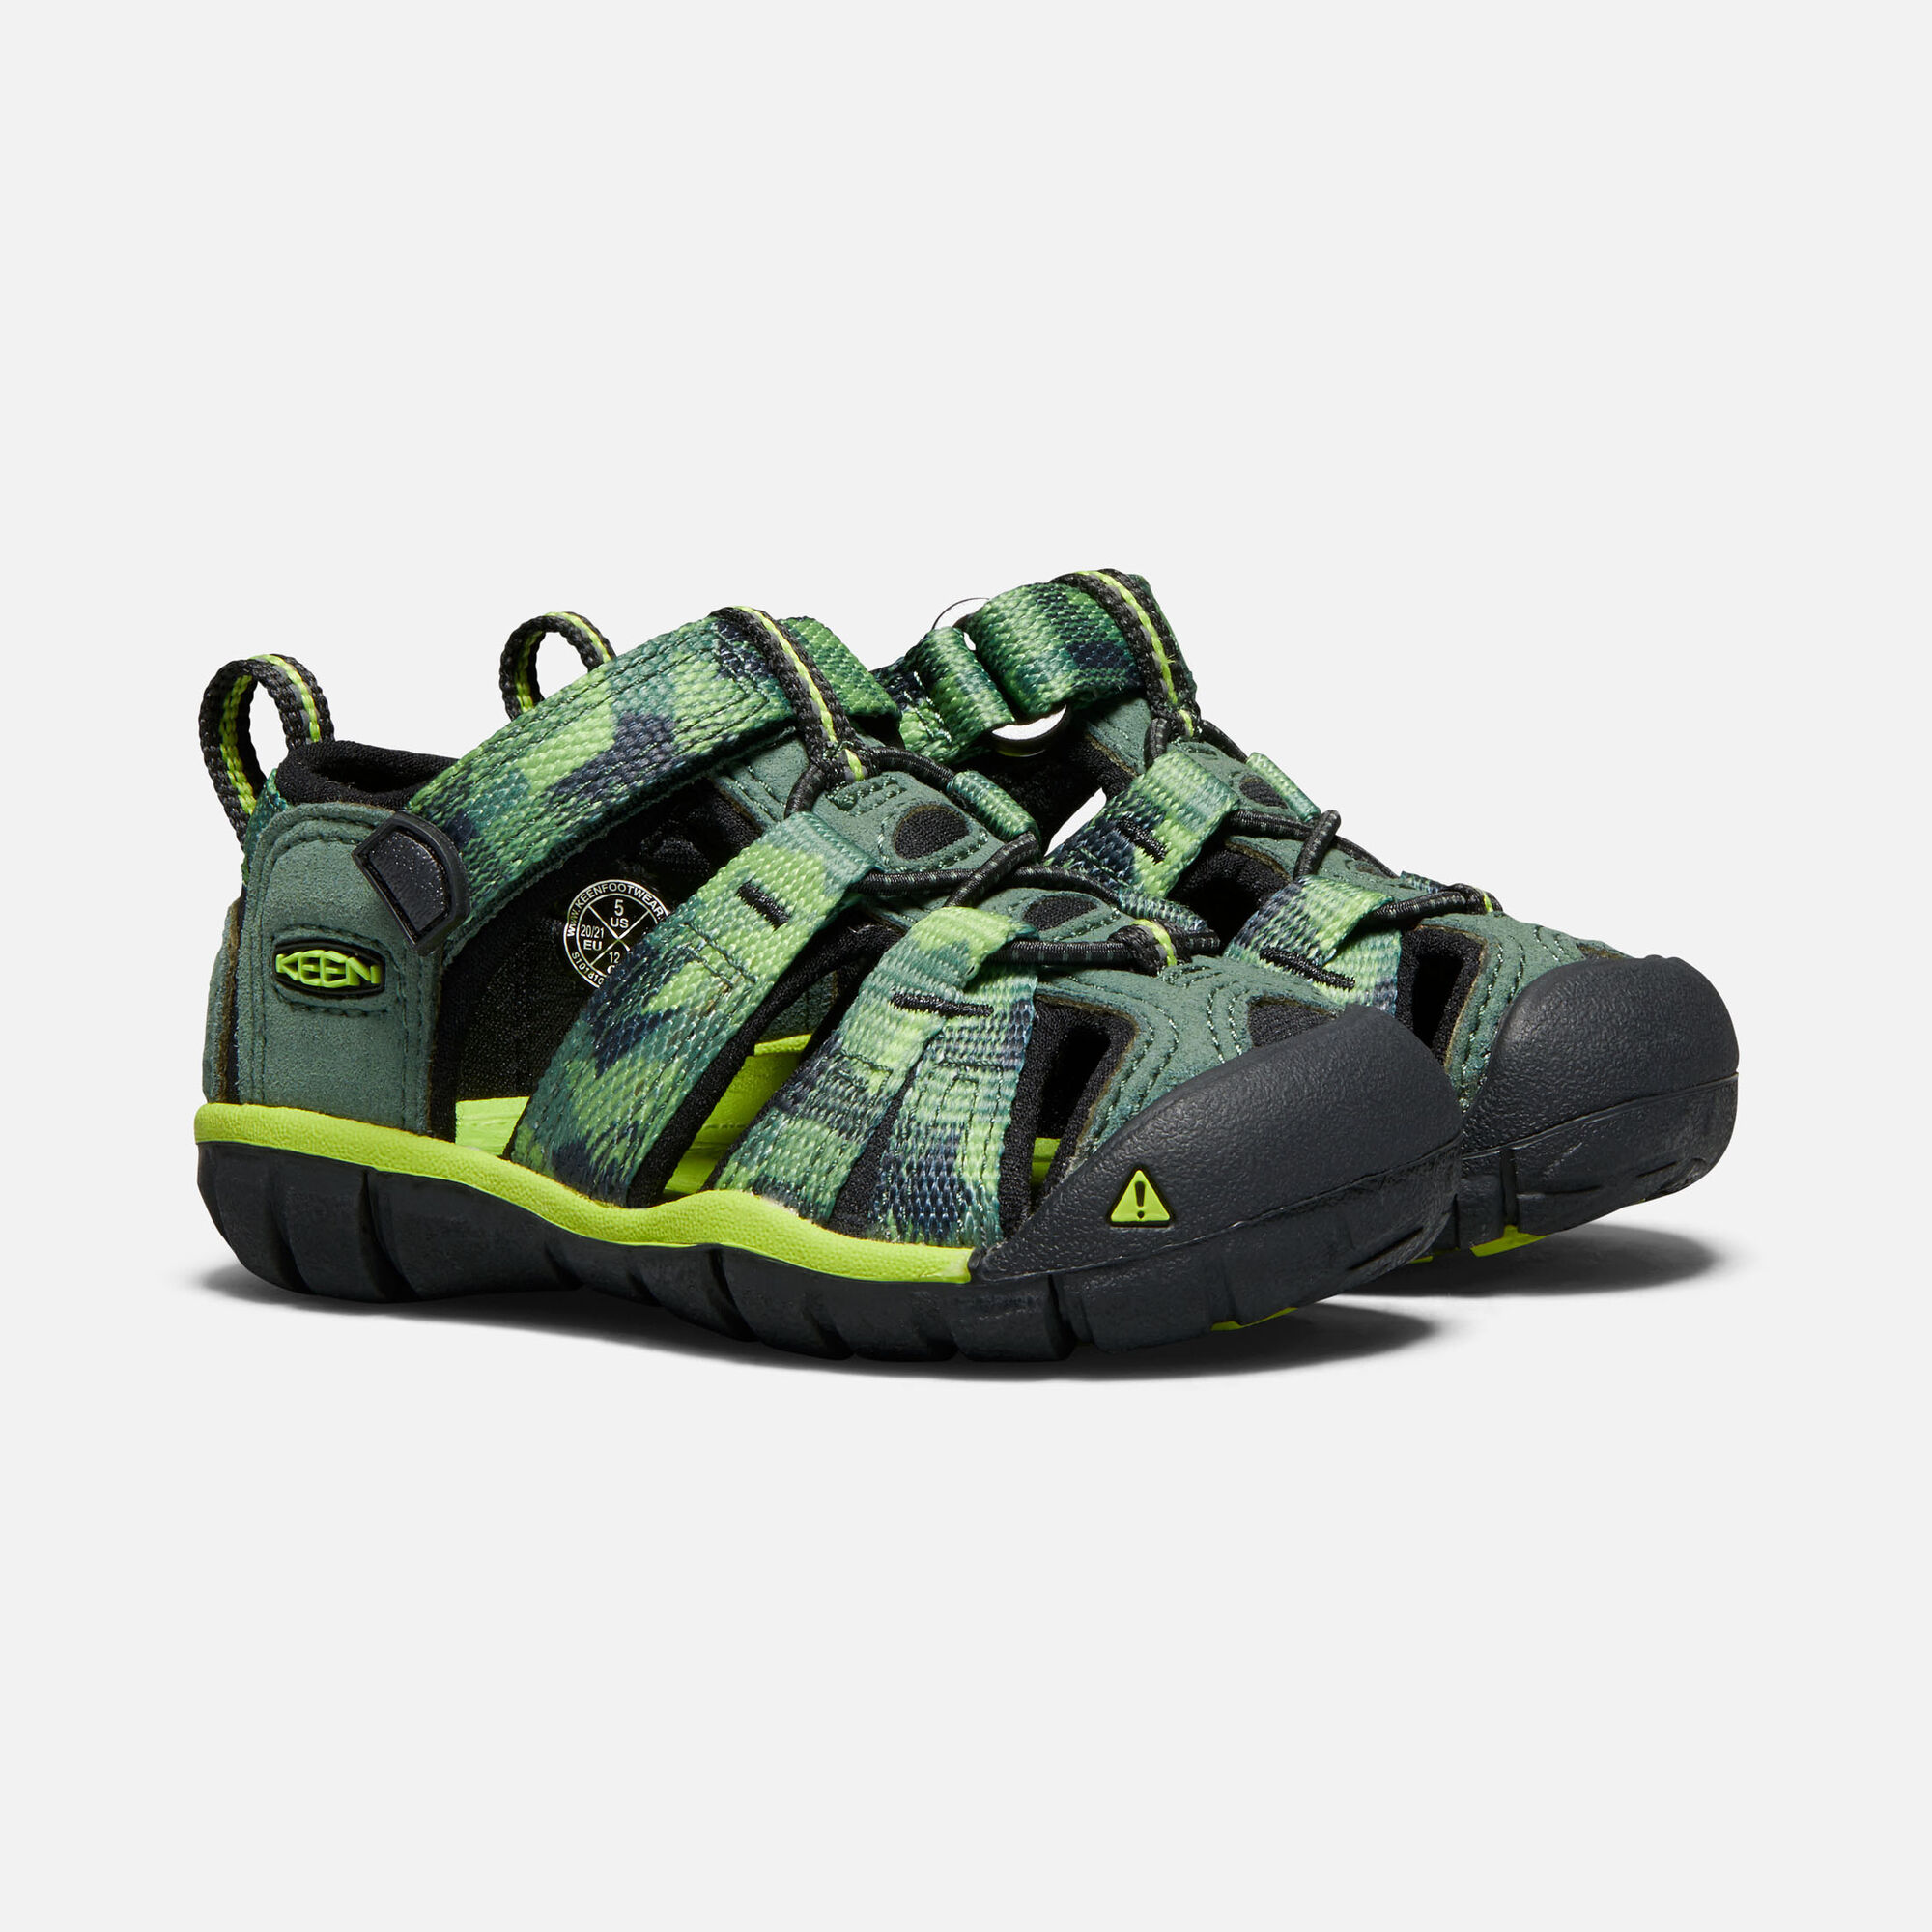 keen footwear case 1 Keen sale at backcountrycom with clearance deals up to 60% off past-season colors & styles buy discount keen sandals, boots, shoes passwords are case.